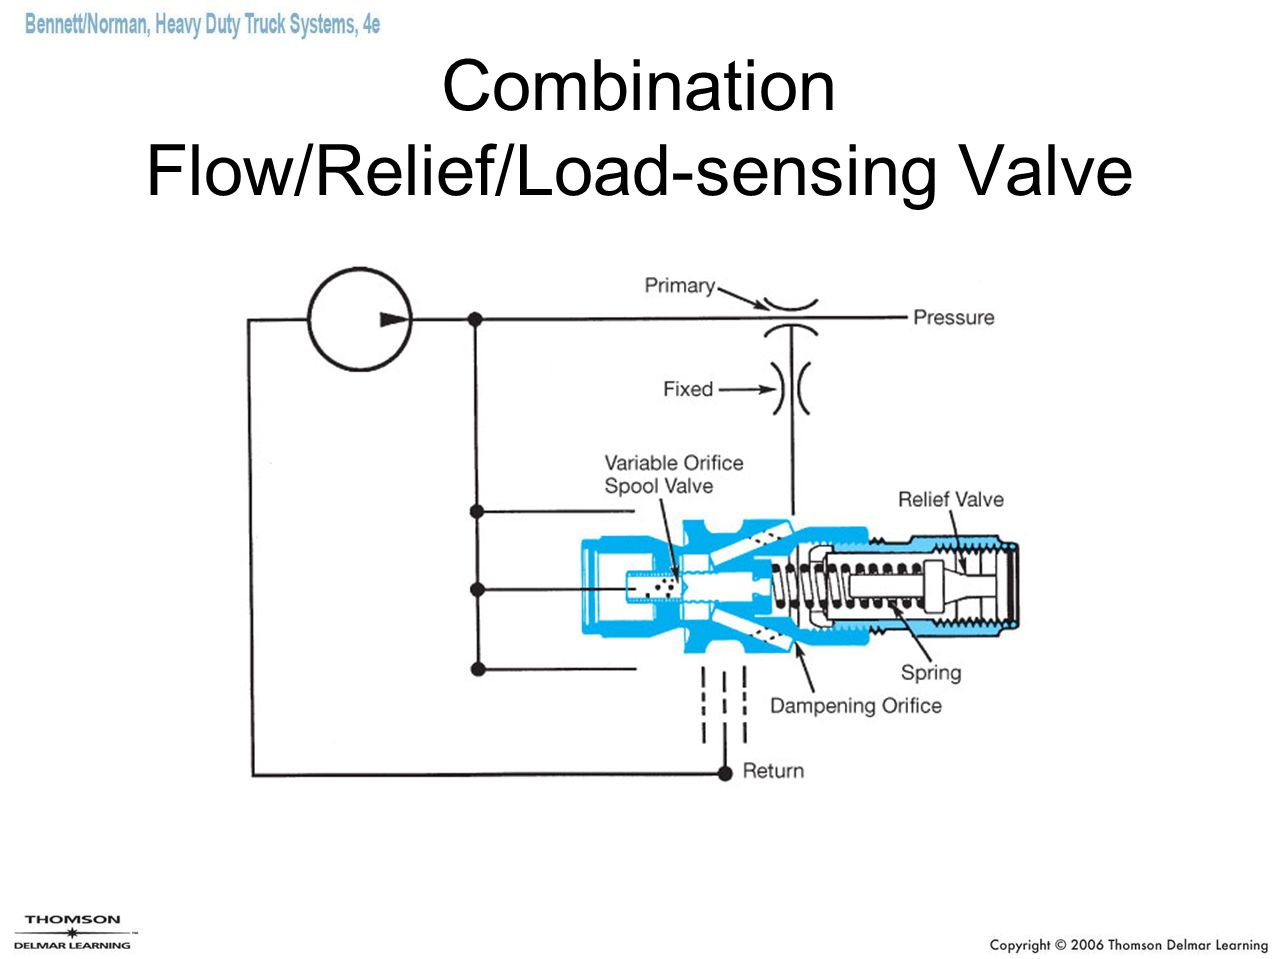 Combination Flow/Relief/Load-sensing Valve